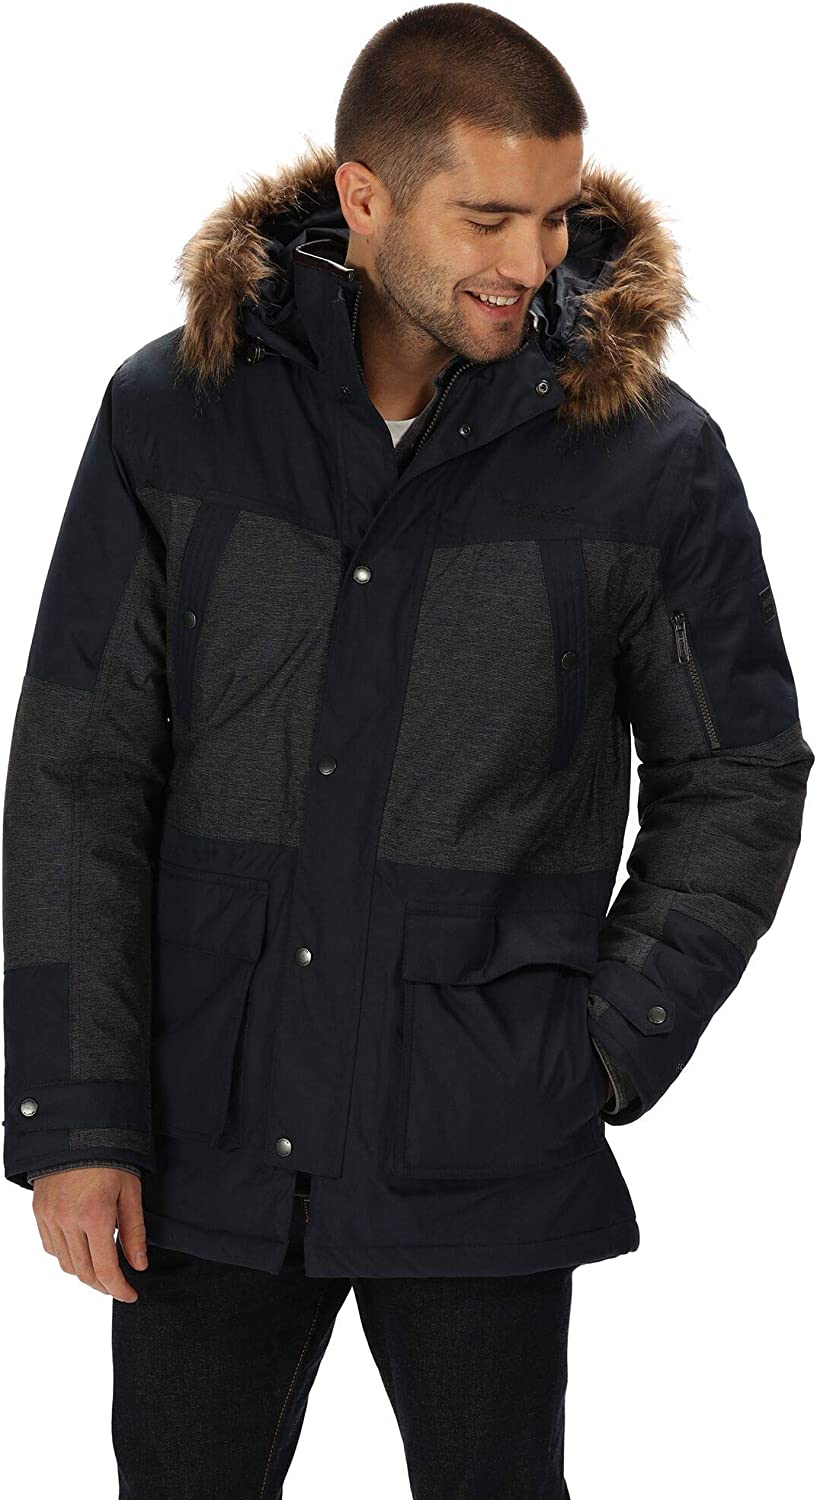 Regatta Mens Aalto Waterproof /& Breathable Heavyweight Down-touch Insulated Faux Fur Hooded Winter Parka Jacket Waterproof